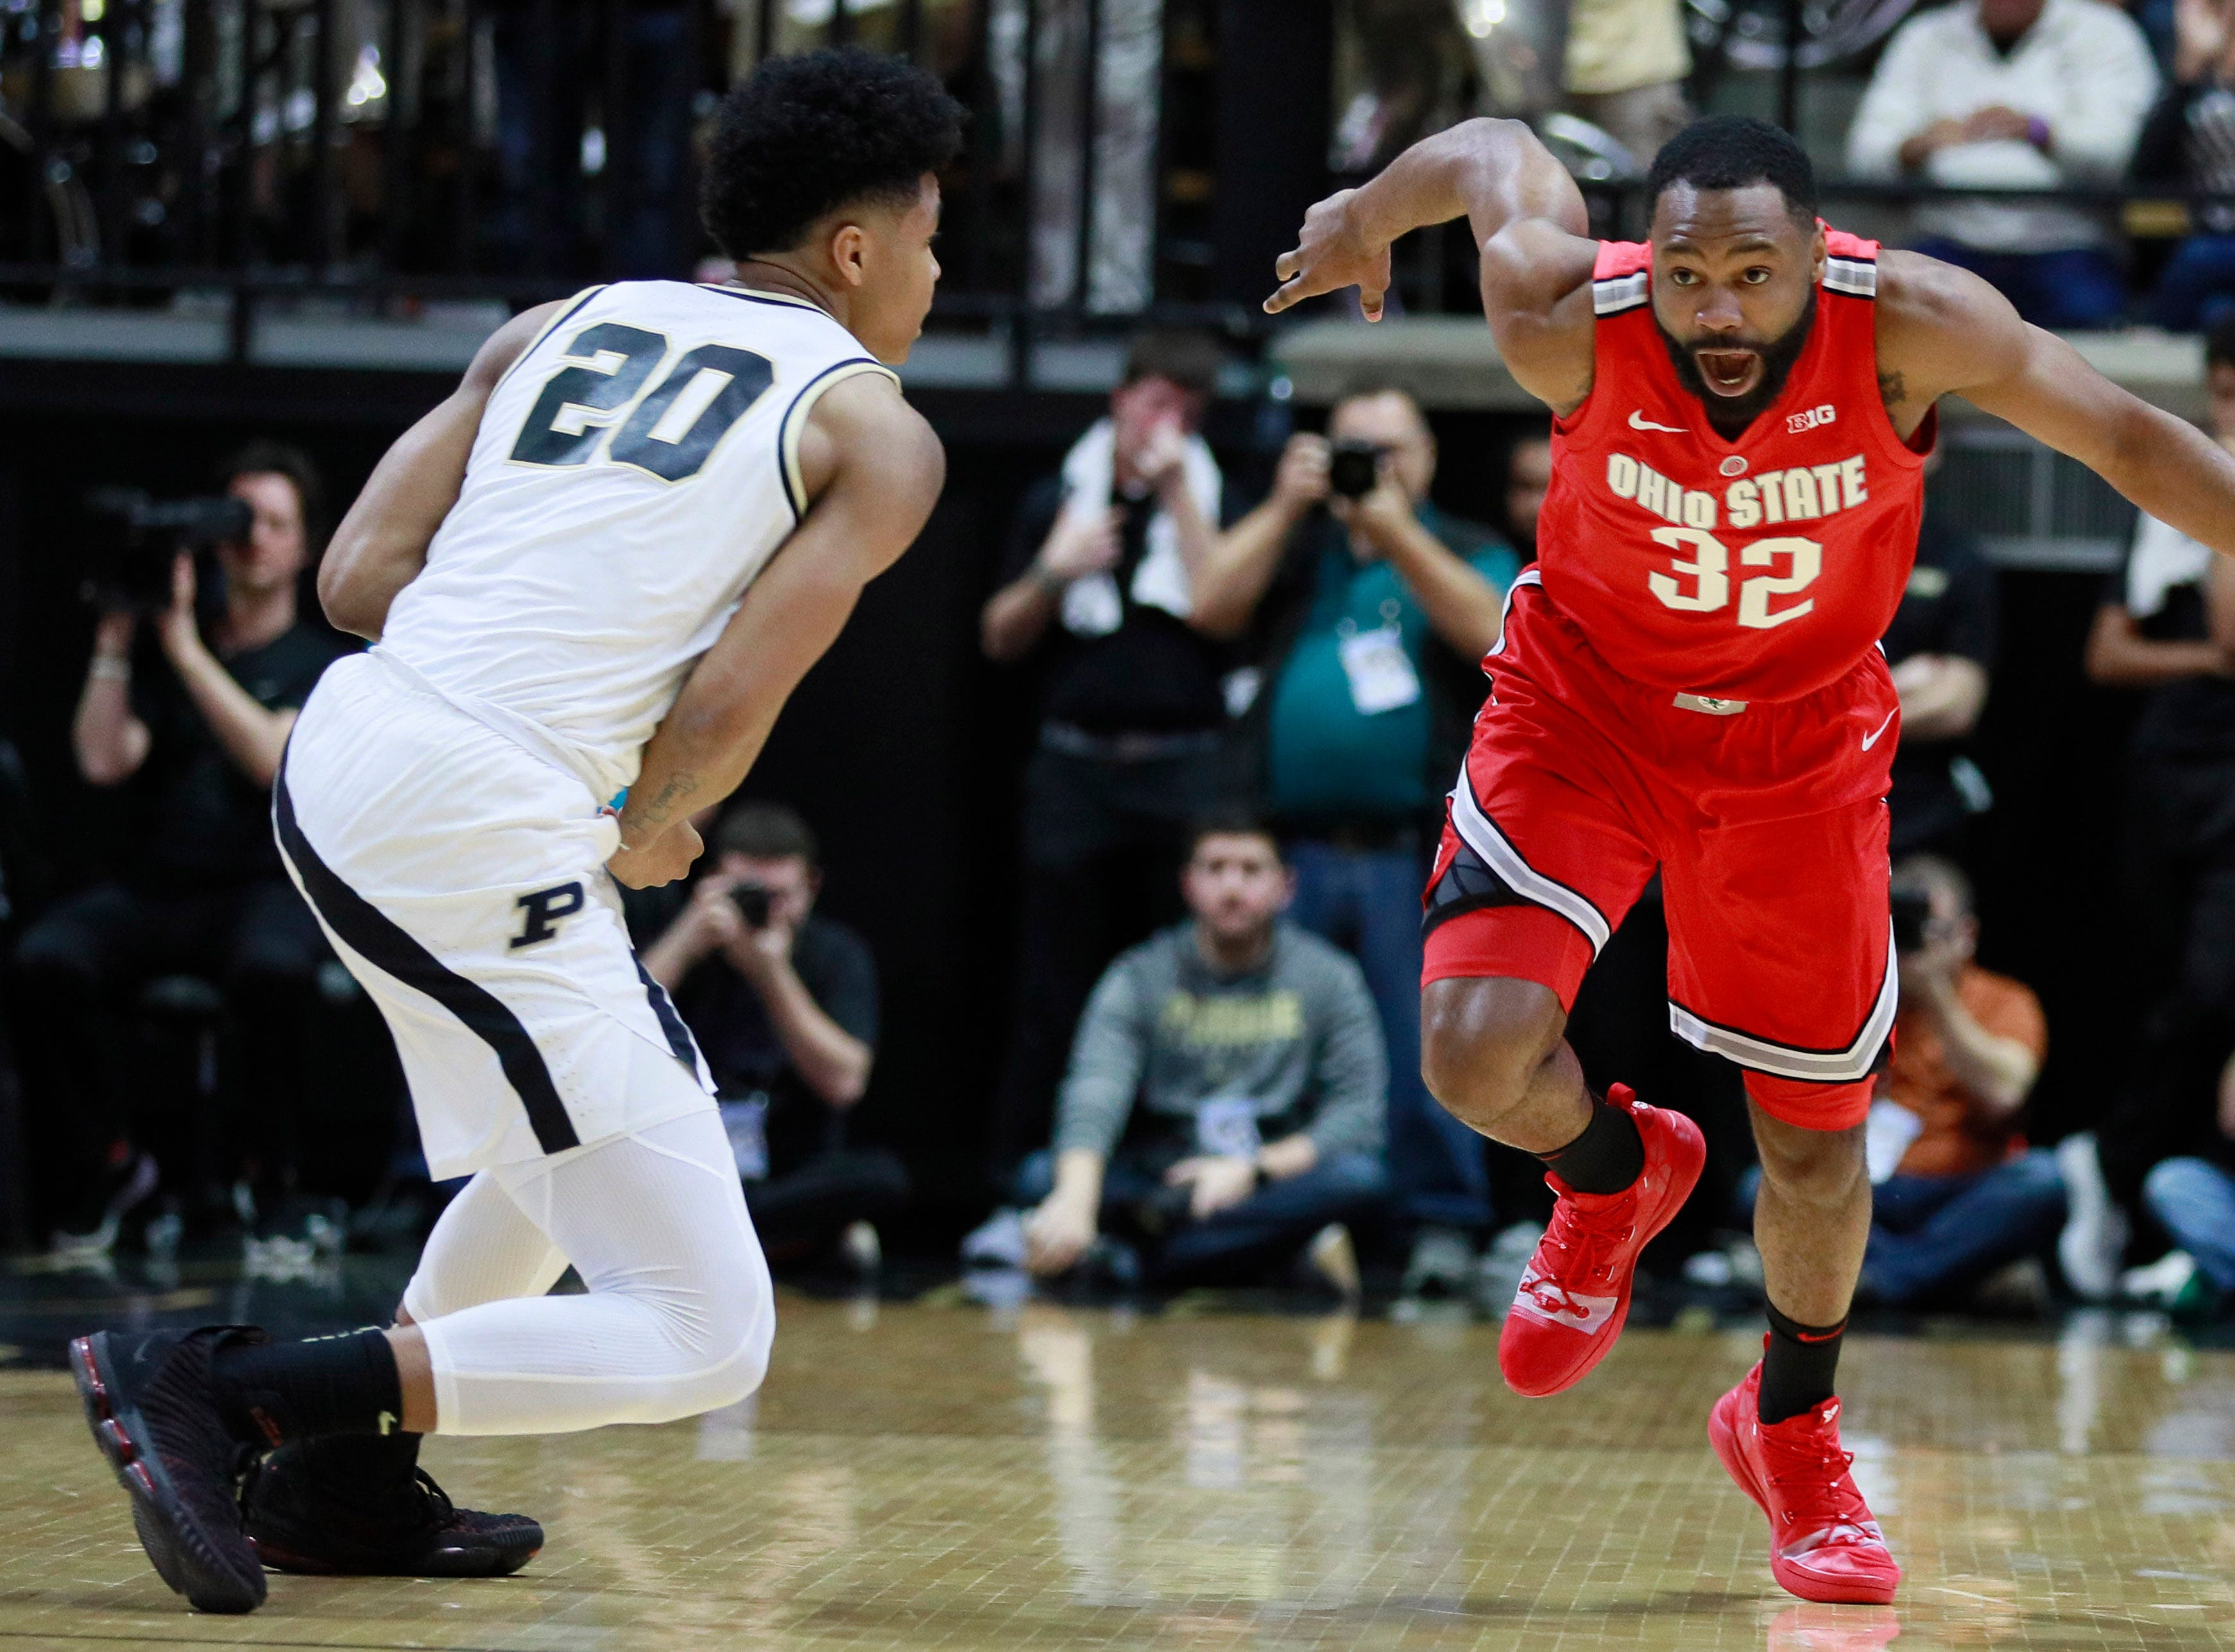 6. Ohio State (18-11, 8-10) – For the Buckeyes, the final week of the season is all about trying to firm up their NCAA Tournament resume. Still hovering near the bubble, the Buckeyes missed out on a chance by losing at Purdue. They'll now head to Northwestern before hosting Wisconsin to close the regular season, all while the status of suspended center Kaleb Wesson remains unclear. Last week: 7.